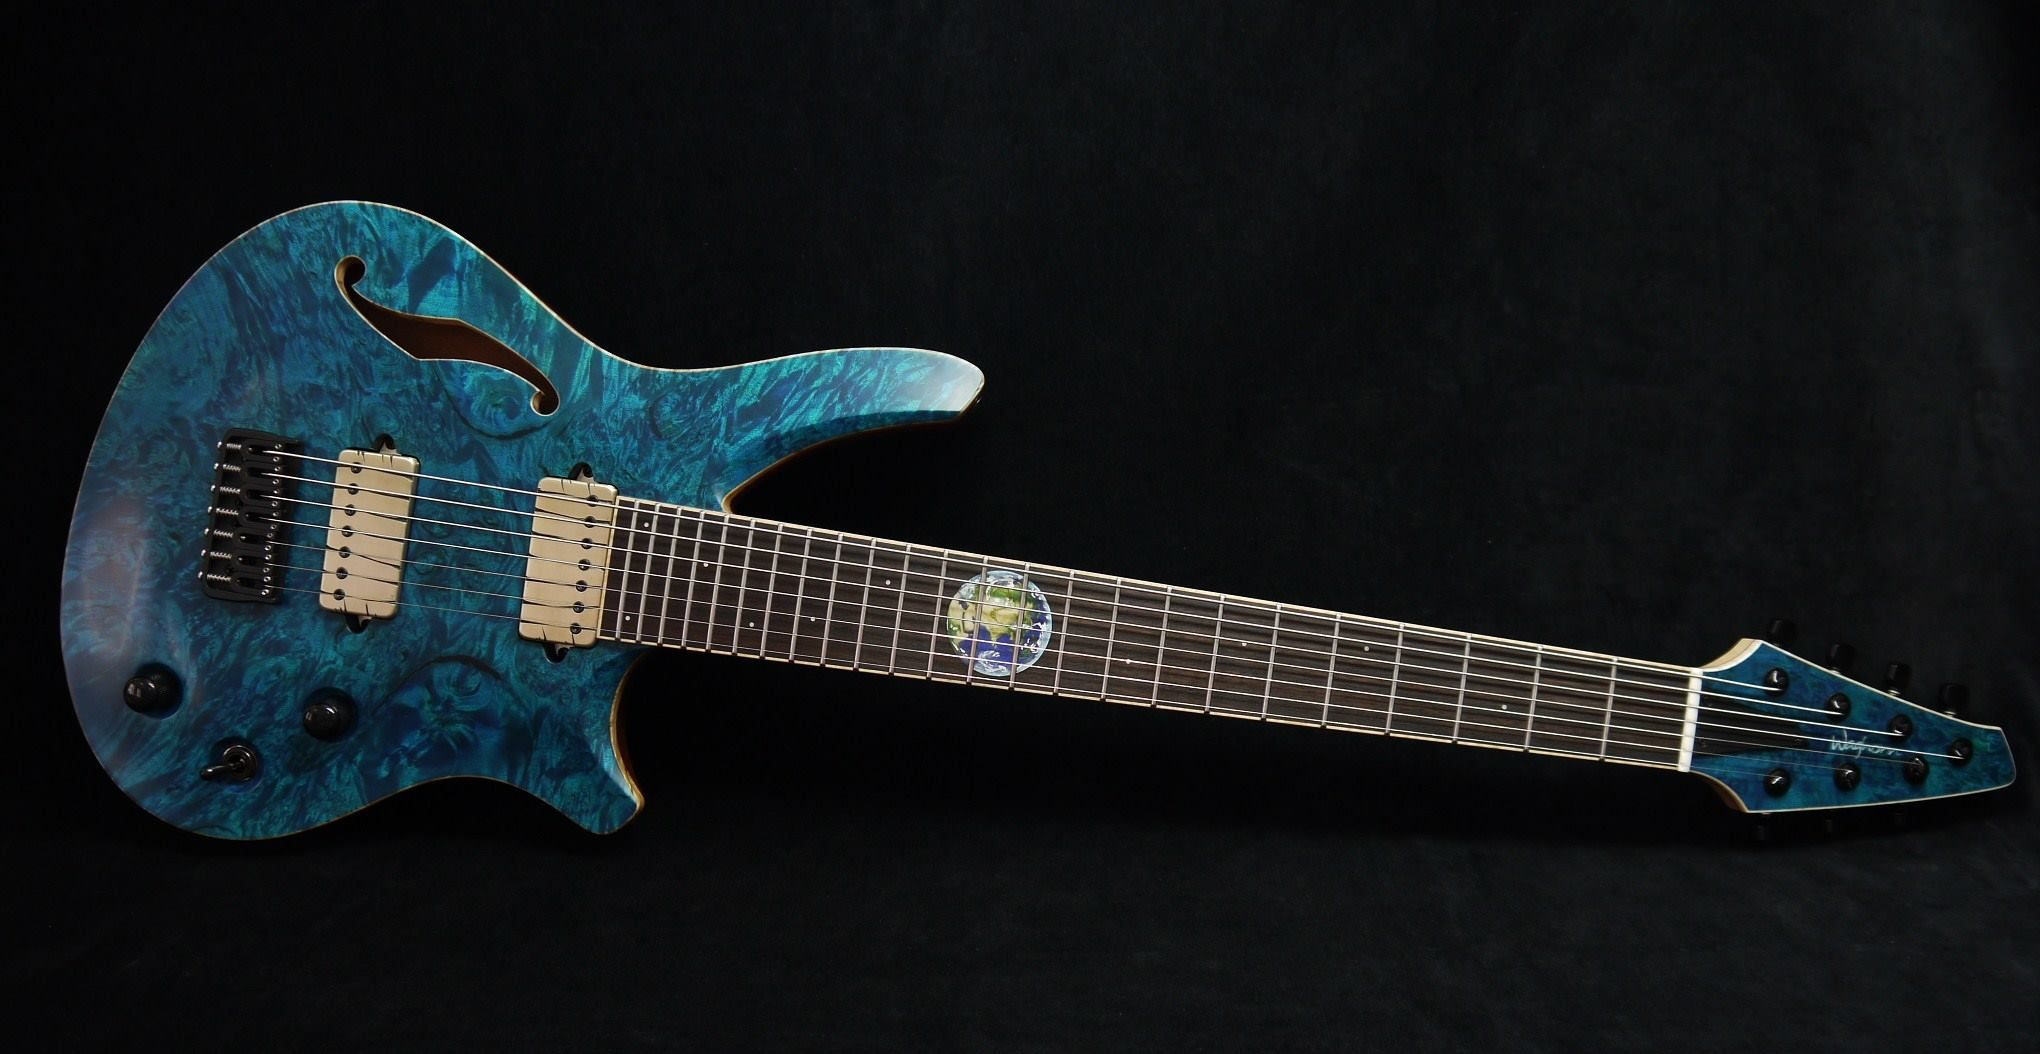 Waghorn Guitars Stuff Pinterest Holy Diver Guitars And